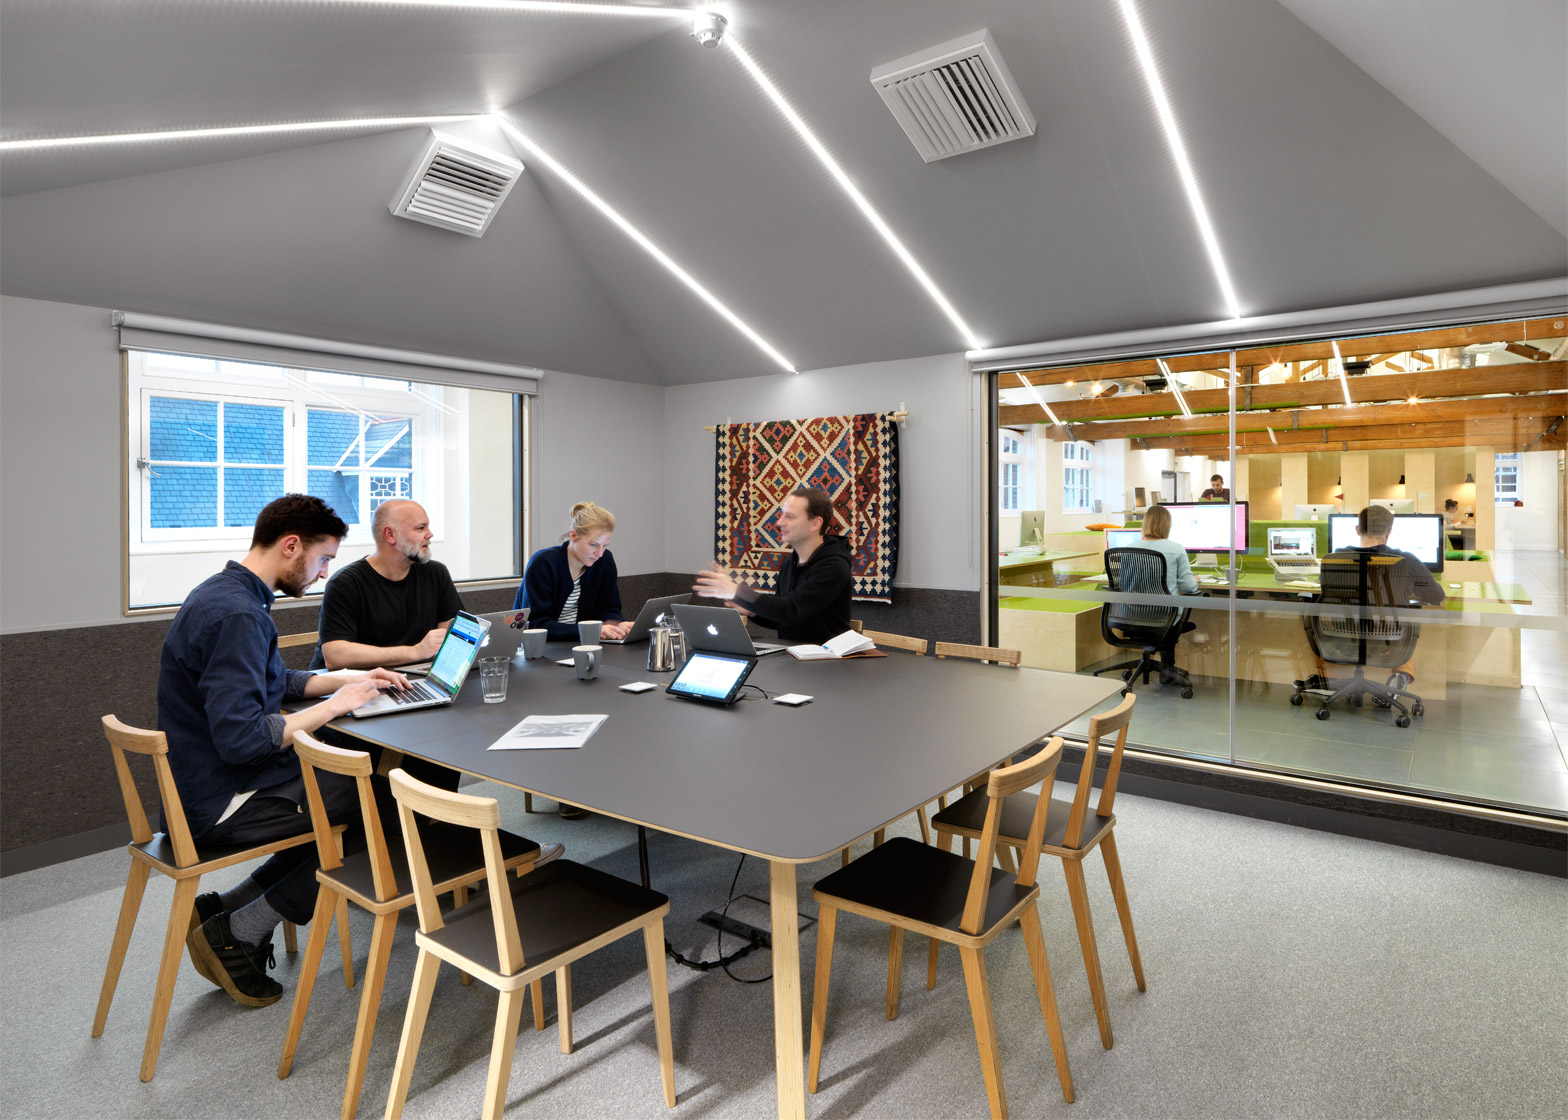 airbnb-office_london_threefold_dezeen_1568_6